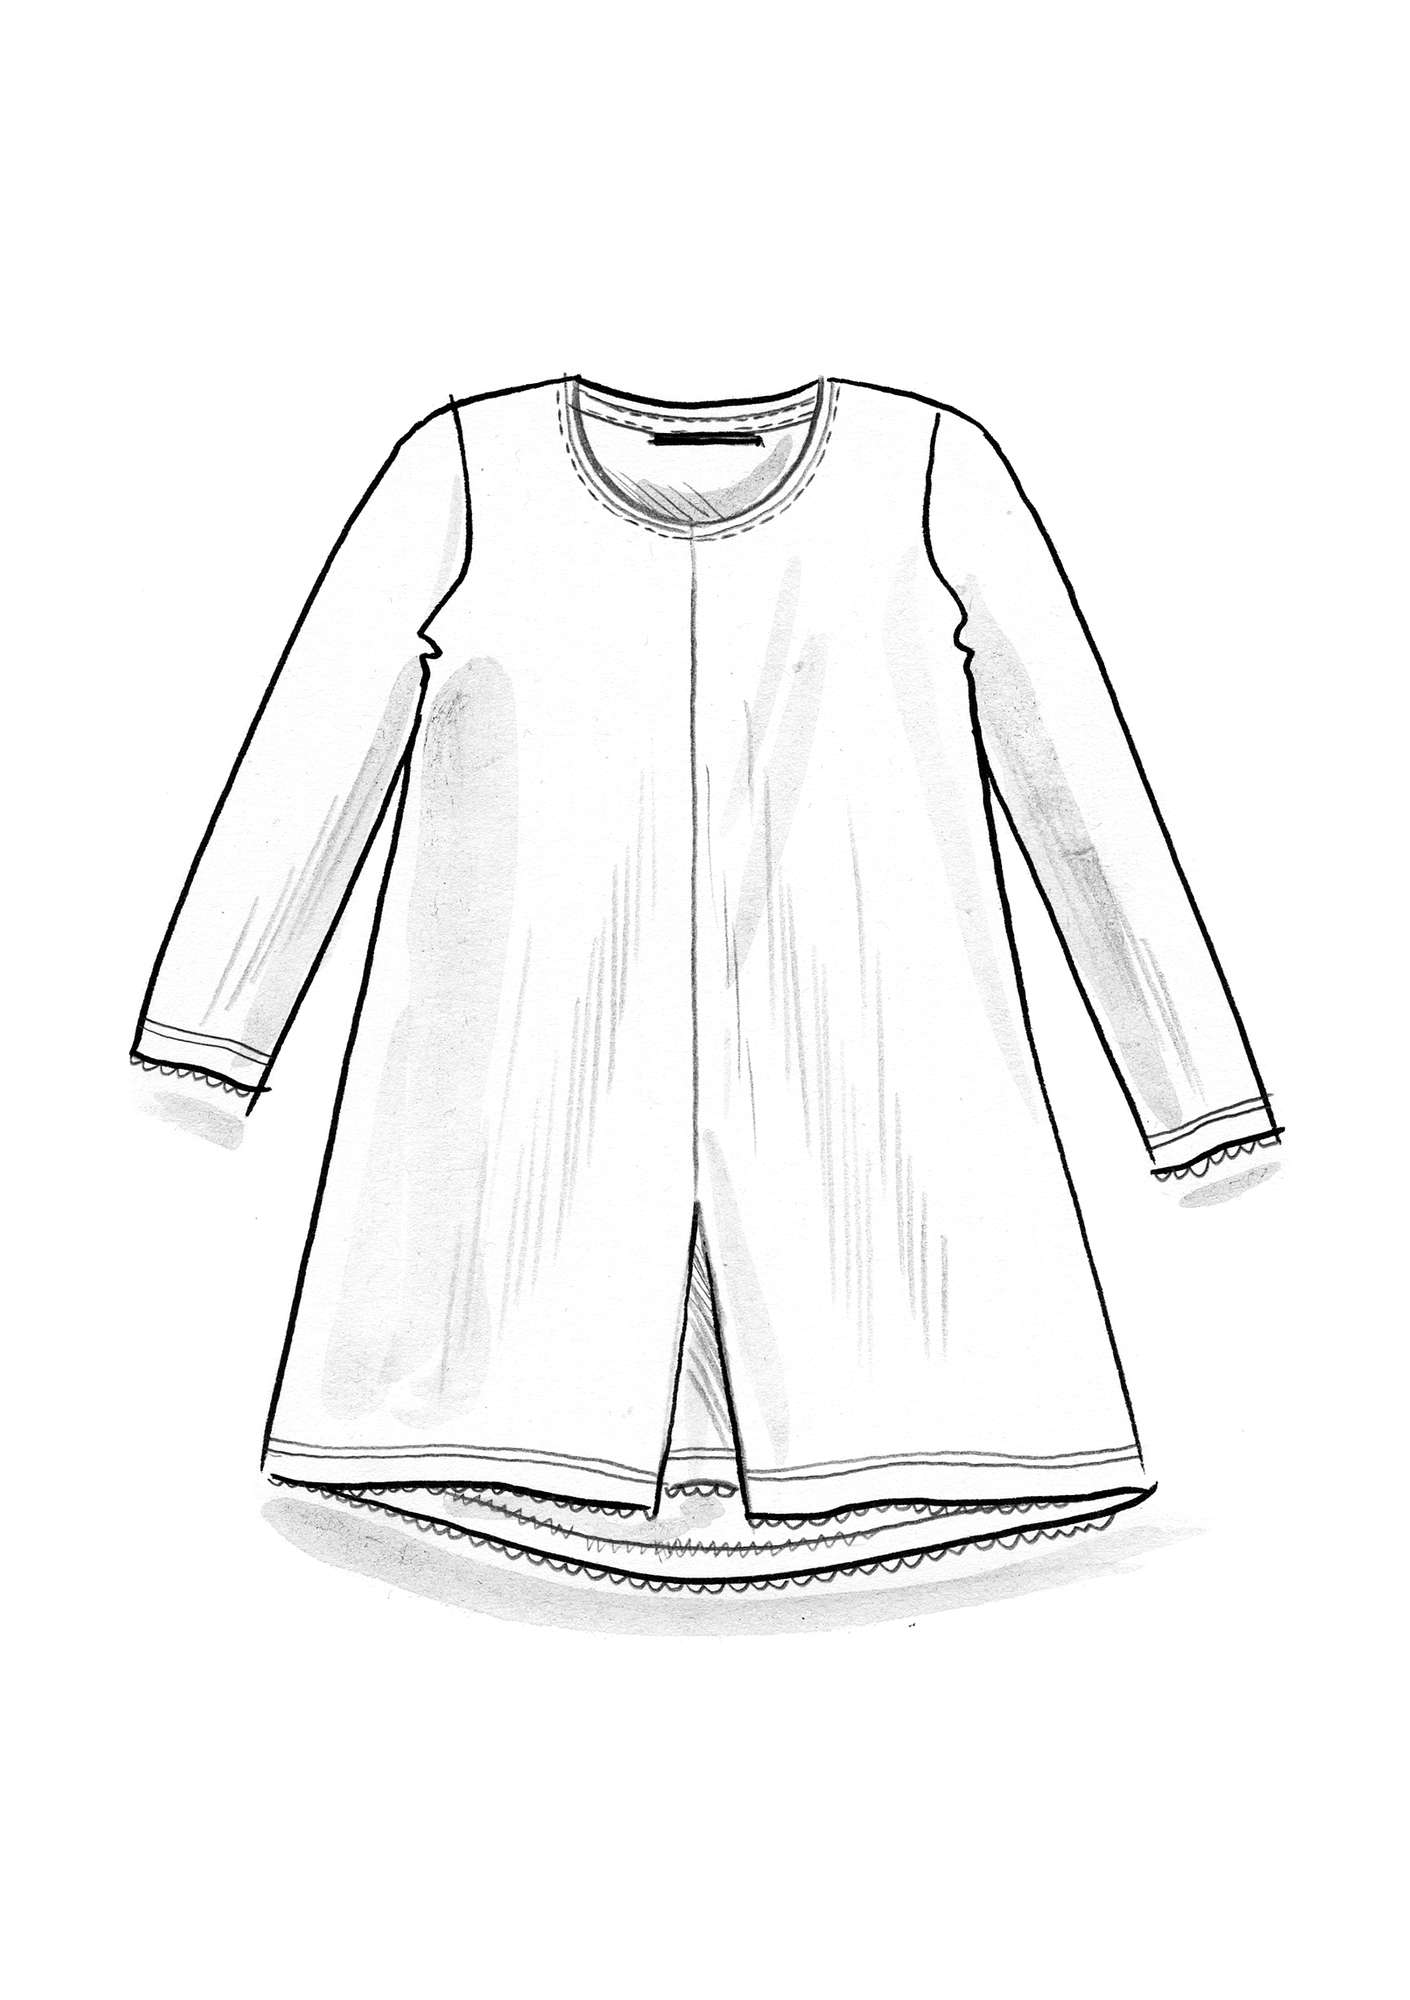 Linen tunic fig